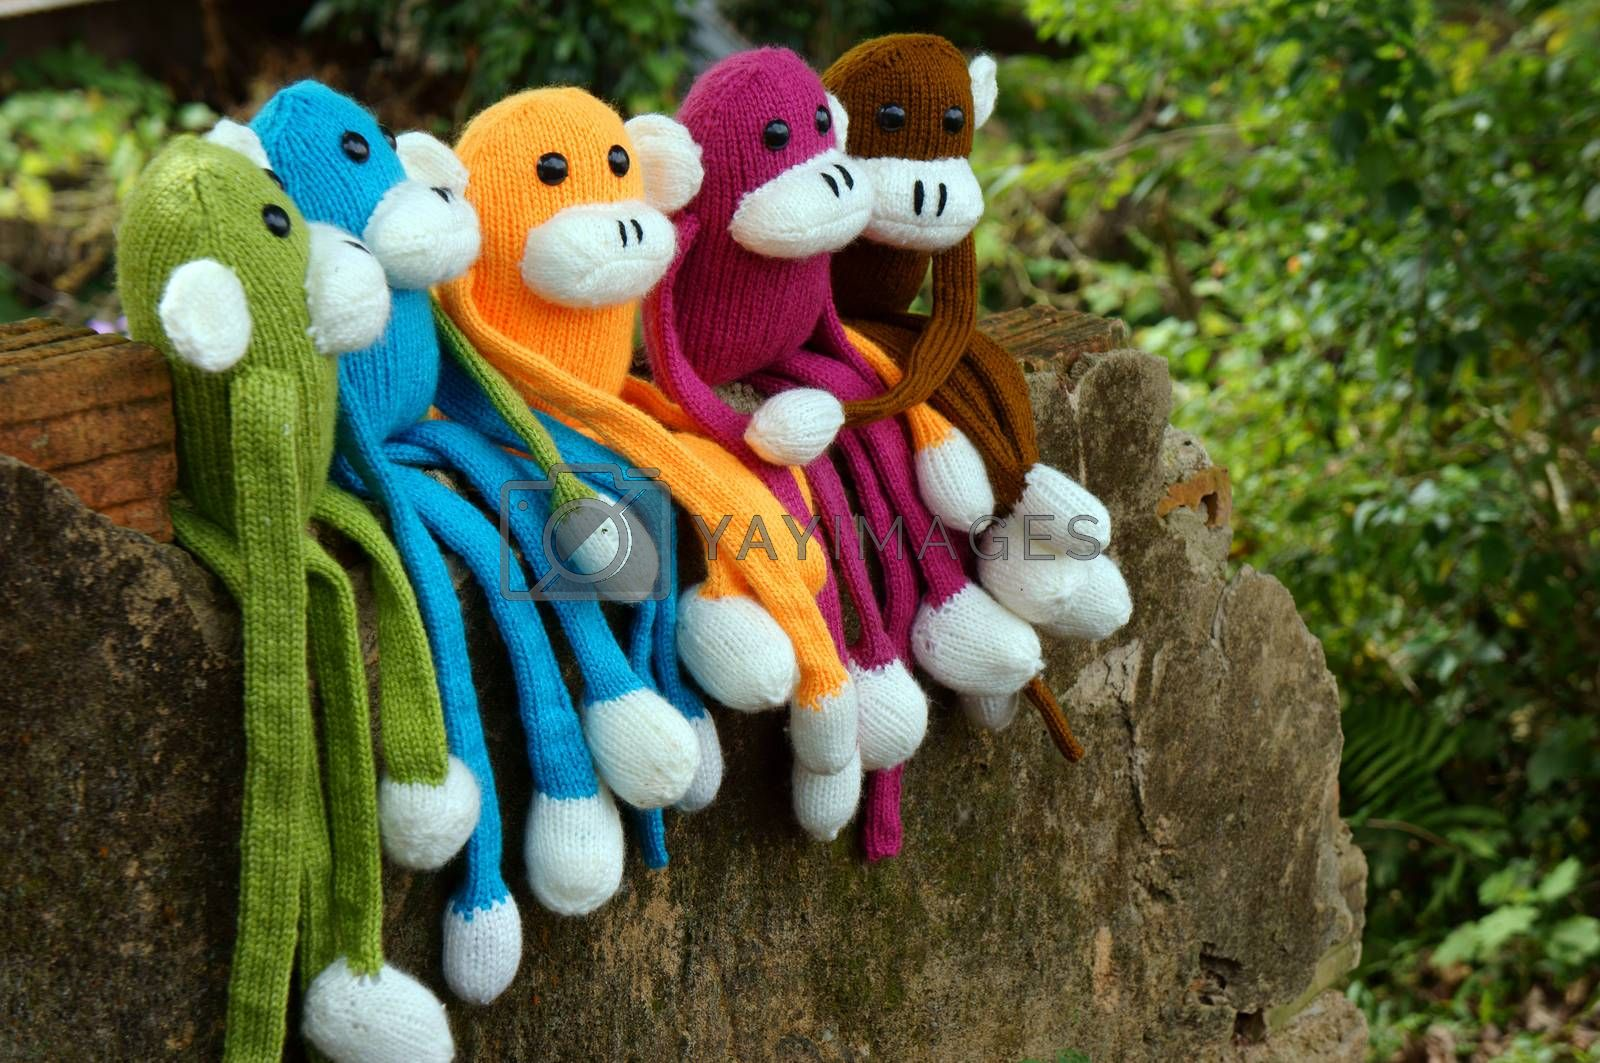 Amazing scene with group of knitted monkey climb tree, 2016 is year of the monkeys, monkey symbol in colorful yarn to happy new year